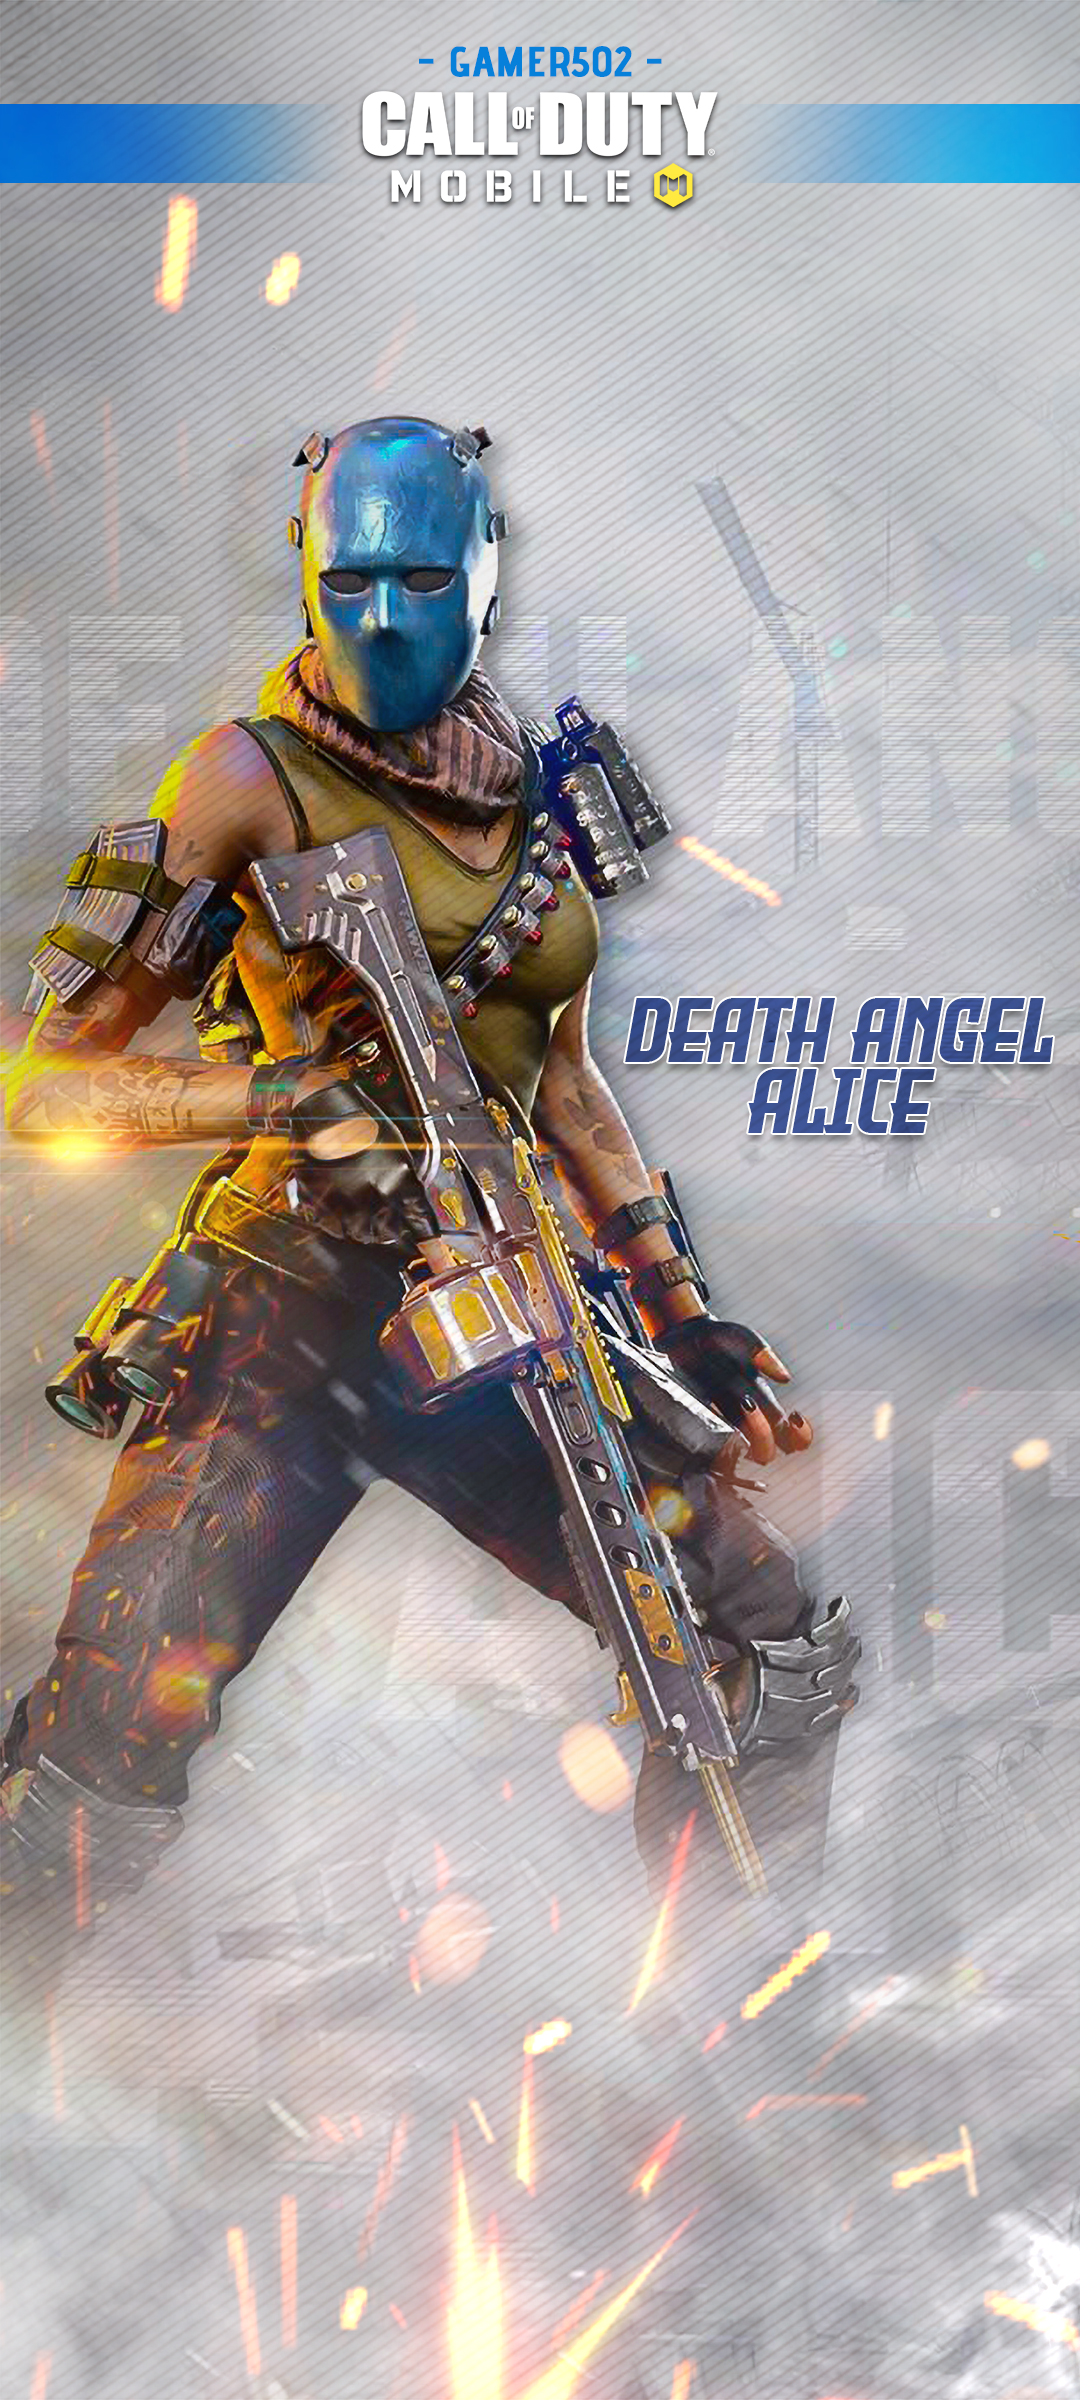 Call of Duty Mobile Wallpaper Death Angel Alice